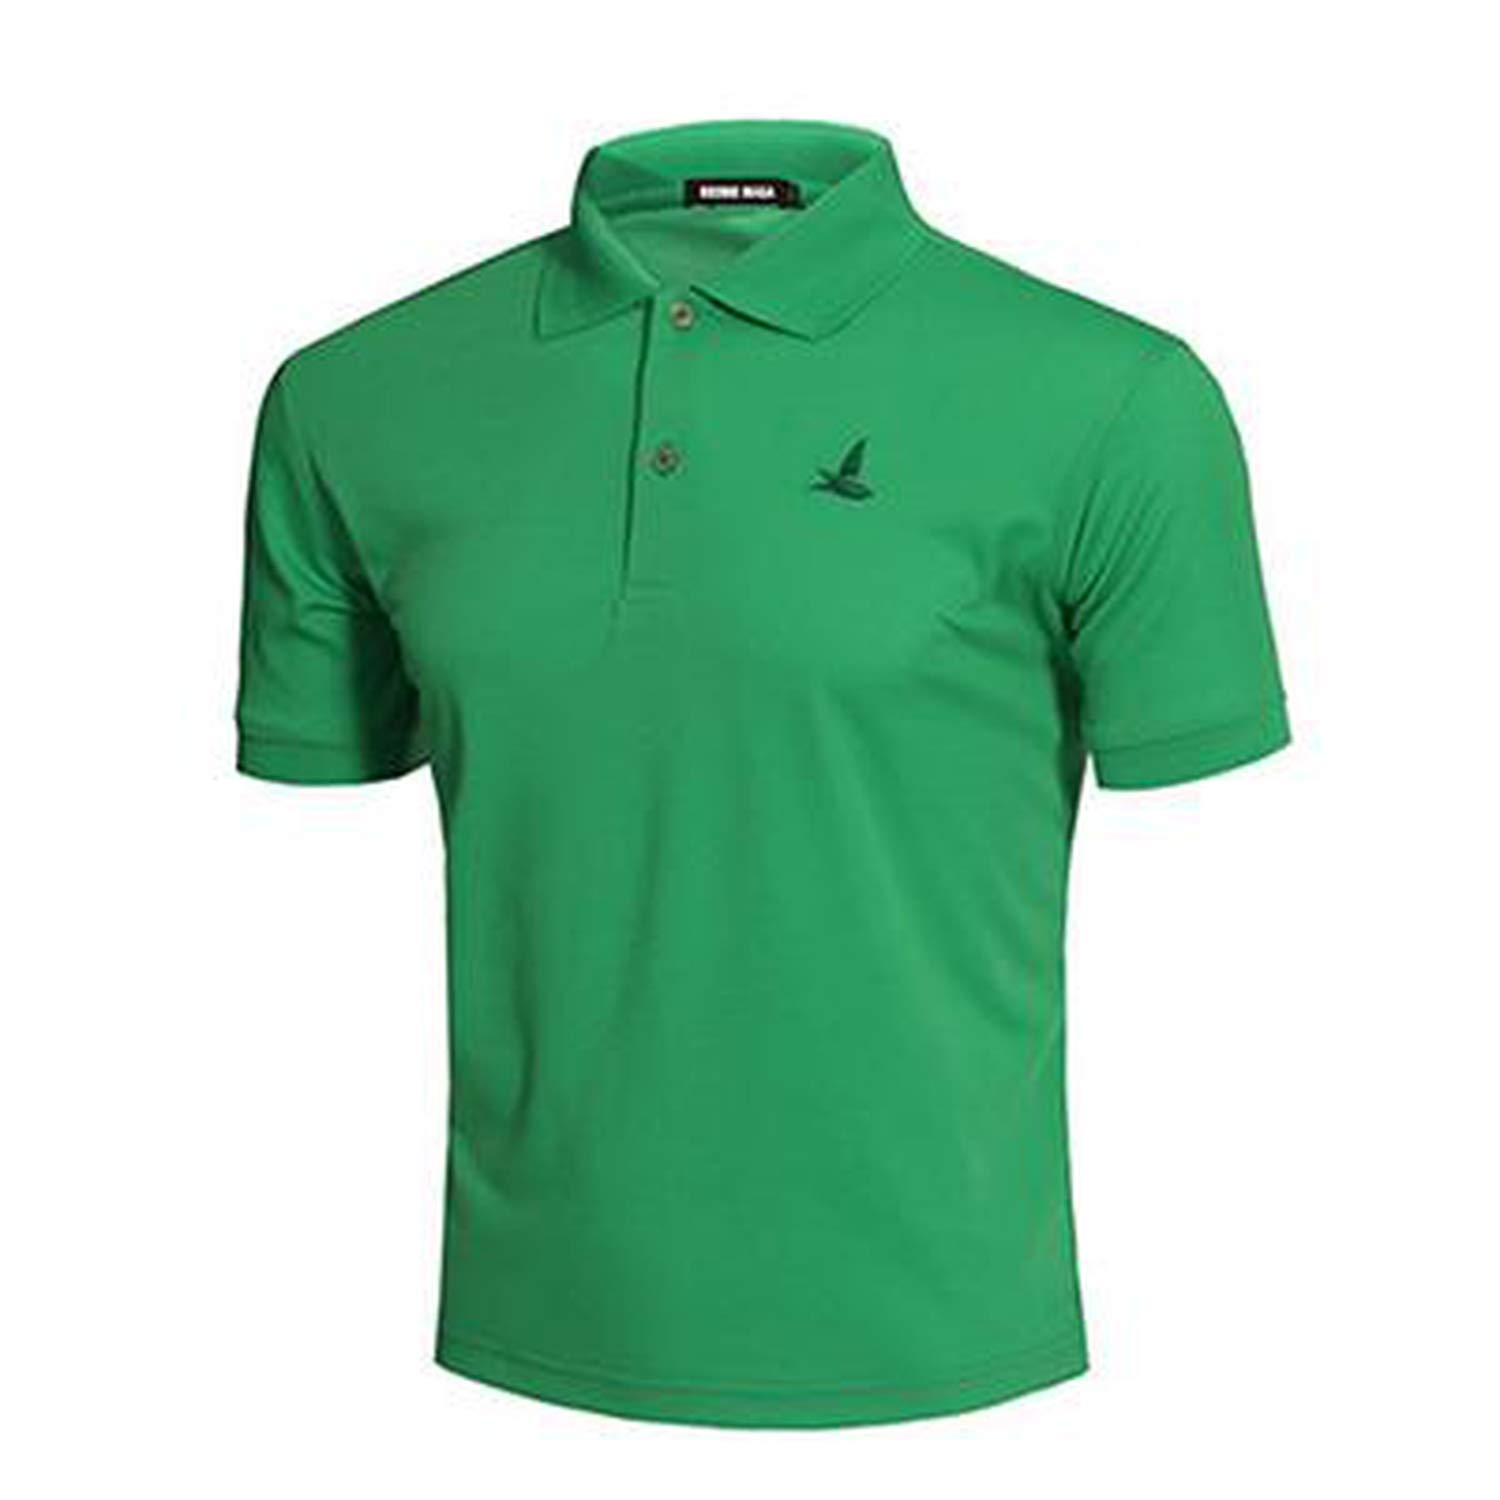 Mens Short Sleeve 2019 Summer Male Polo Shirts Dry Slim Fit Polos MP0001,Green,L